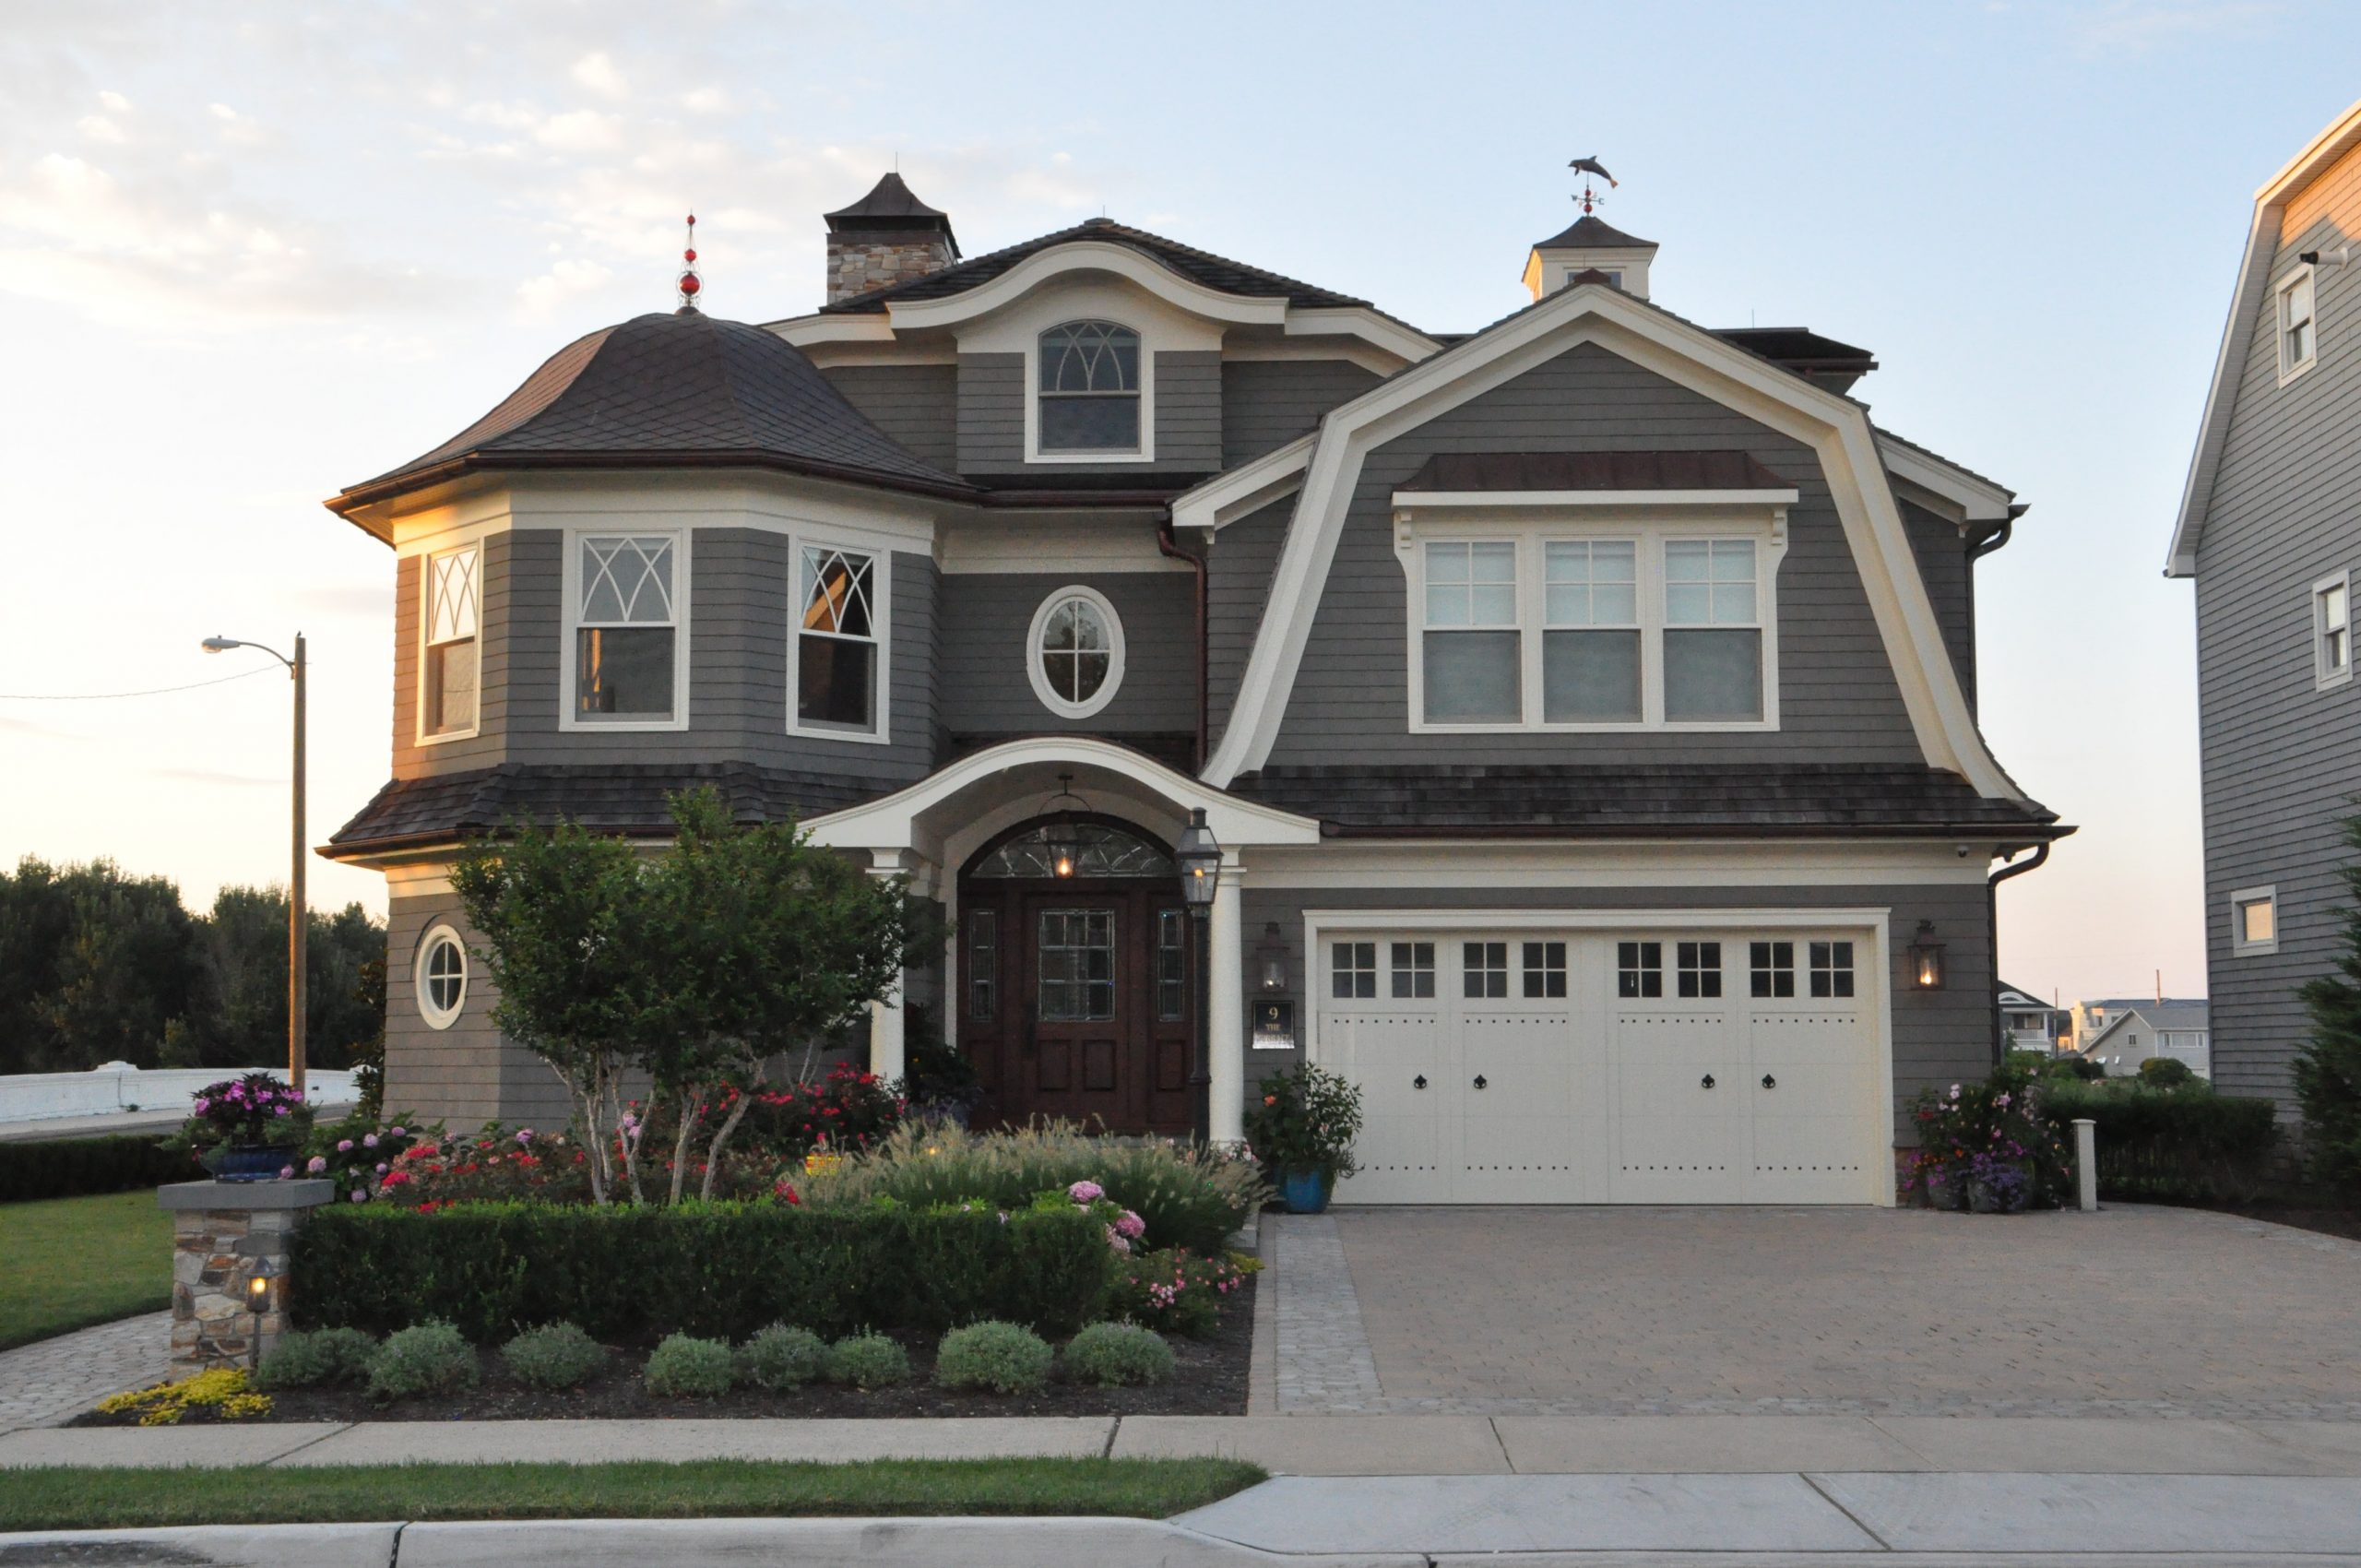 Dark gray cedar shake siding colors with white trim and round columns. Dark brown stained wood front door. White garage doors. Black shingled roof. Brown gutters. Paver walkways and driveway. Beautiful landscaping. Brown stone veneer and matching chimney.